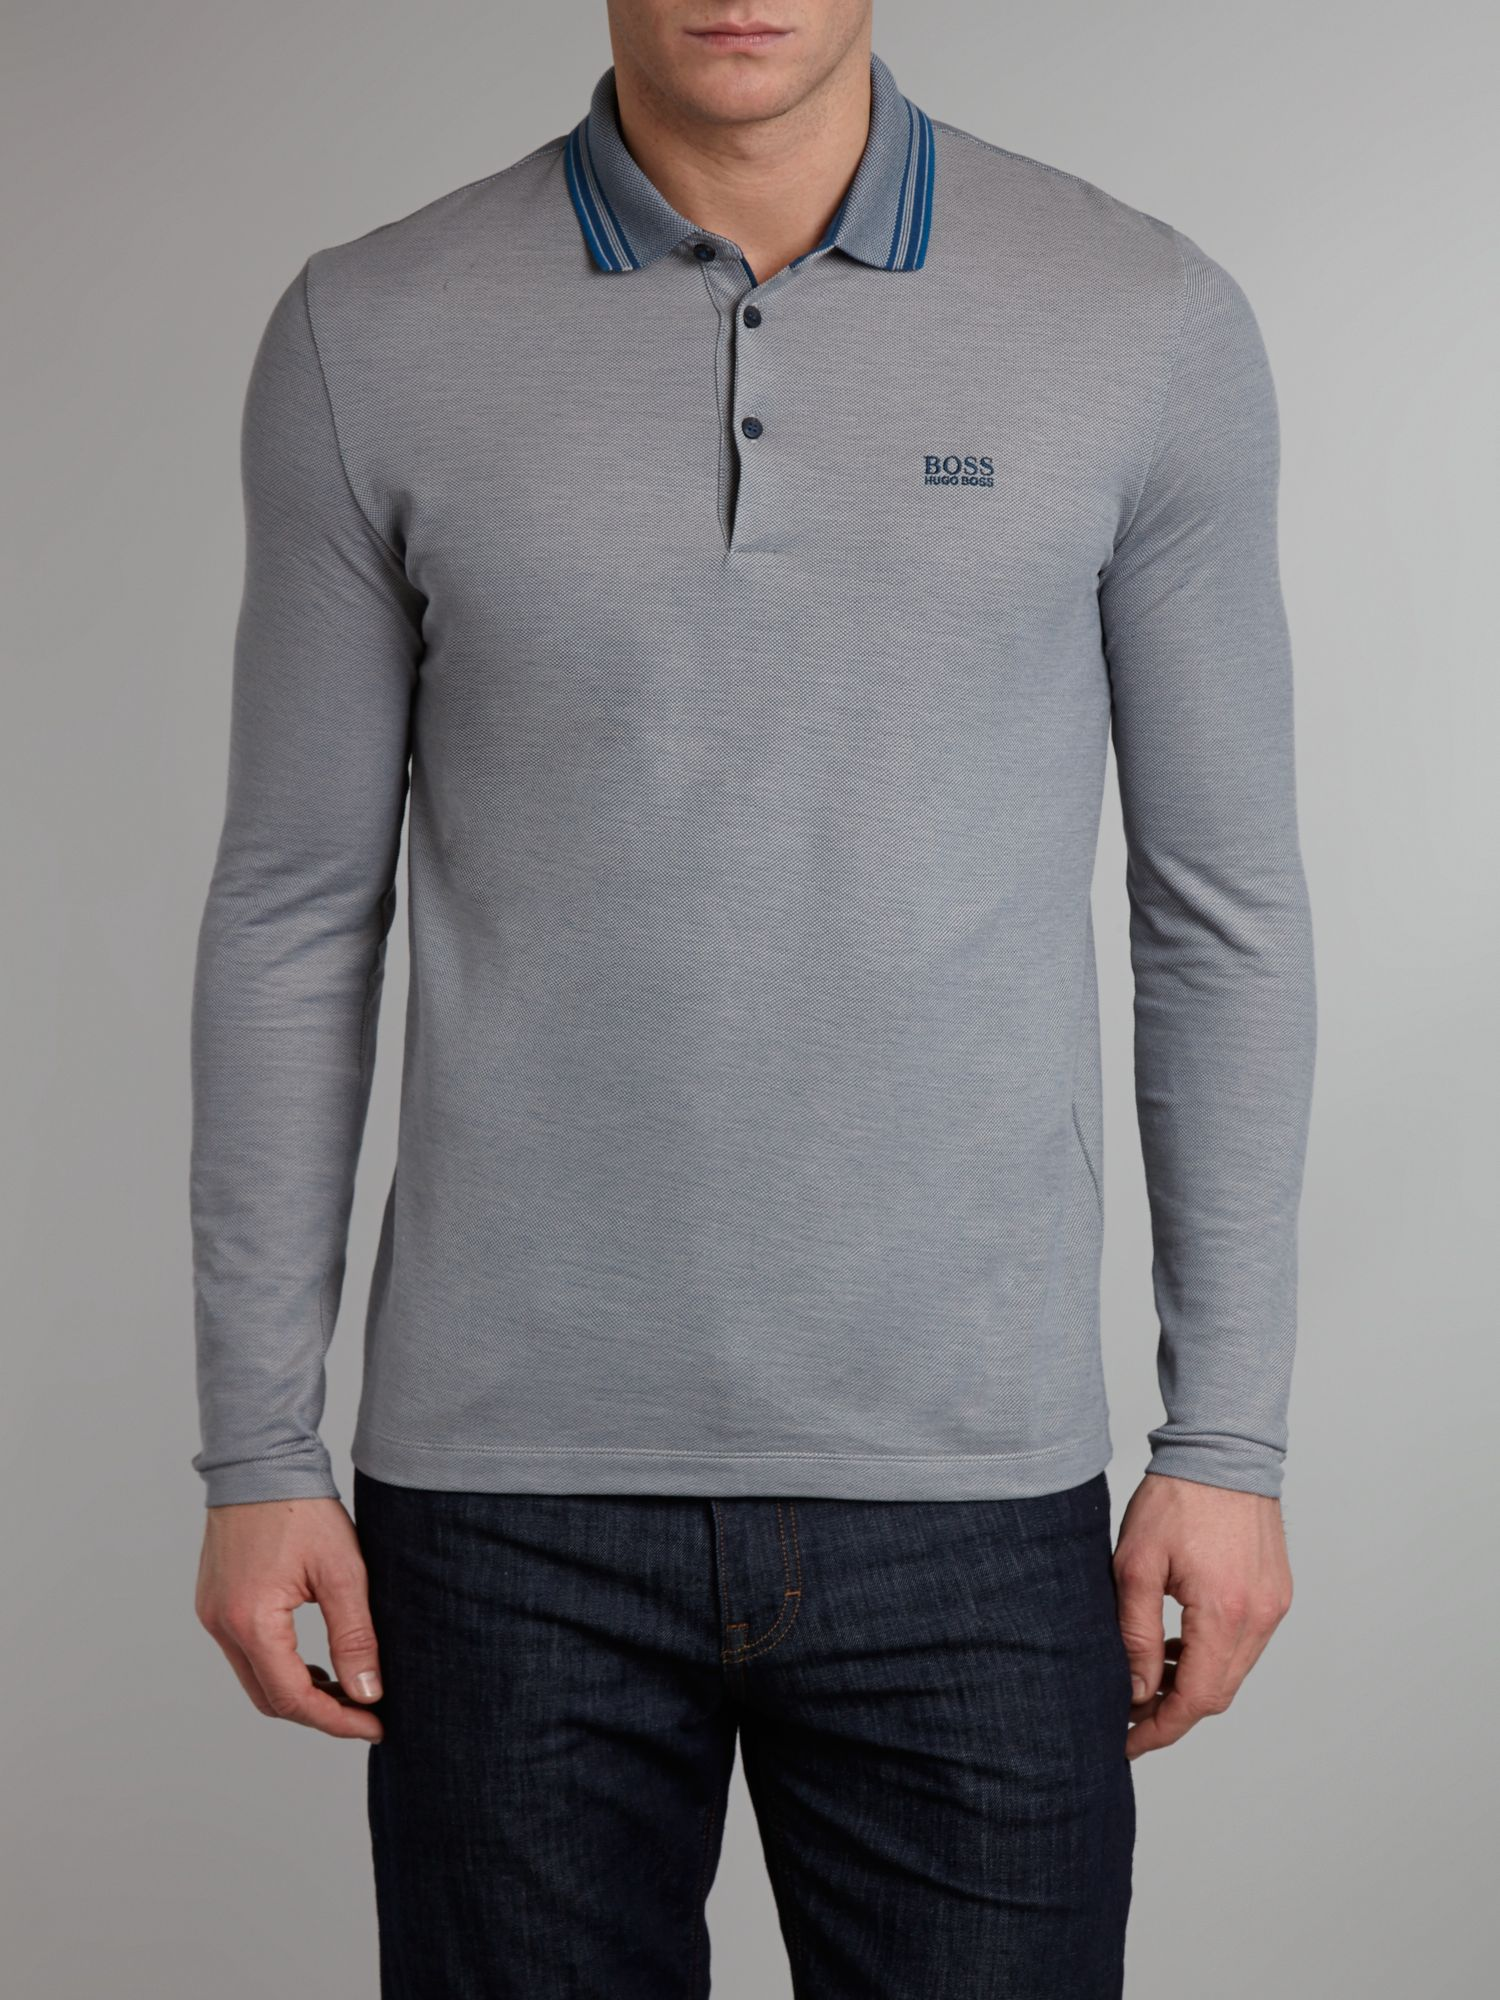 Long sleeve oxford pique polo shirt